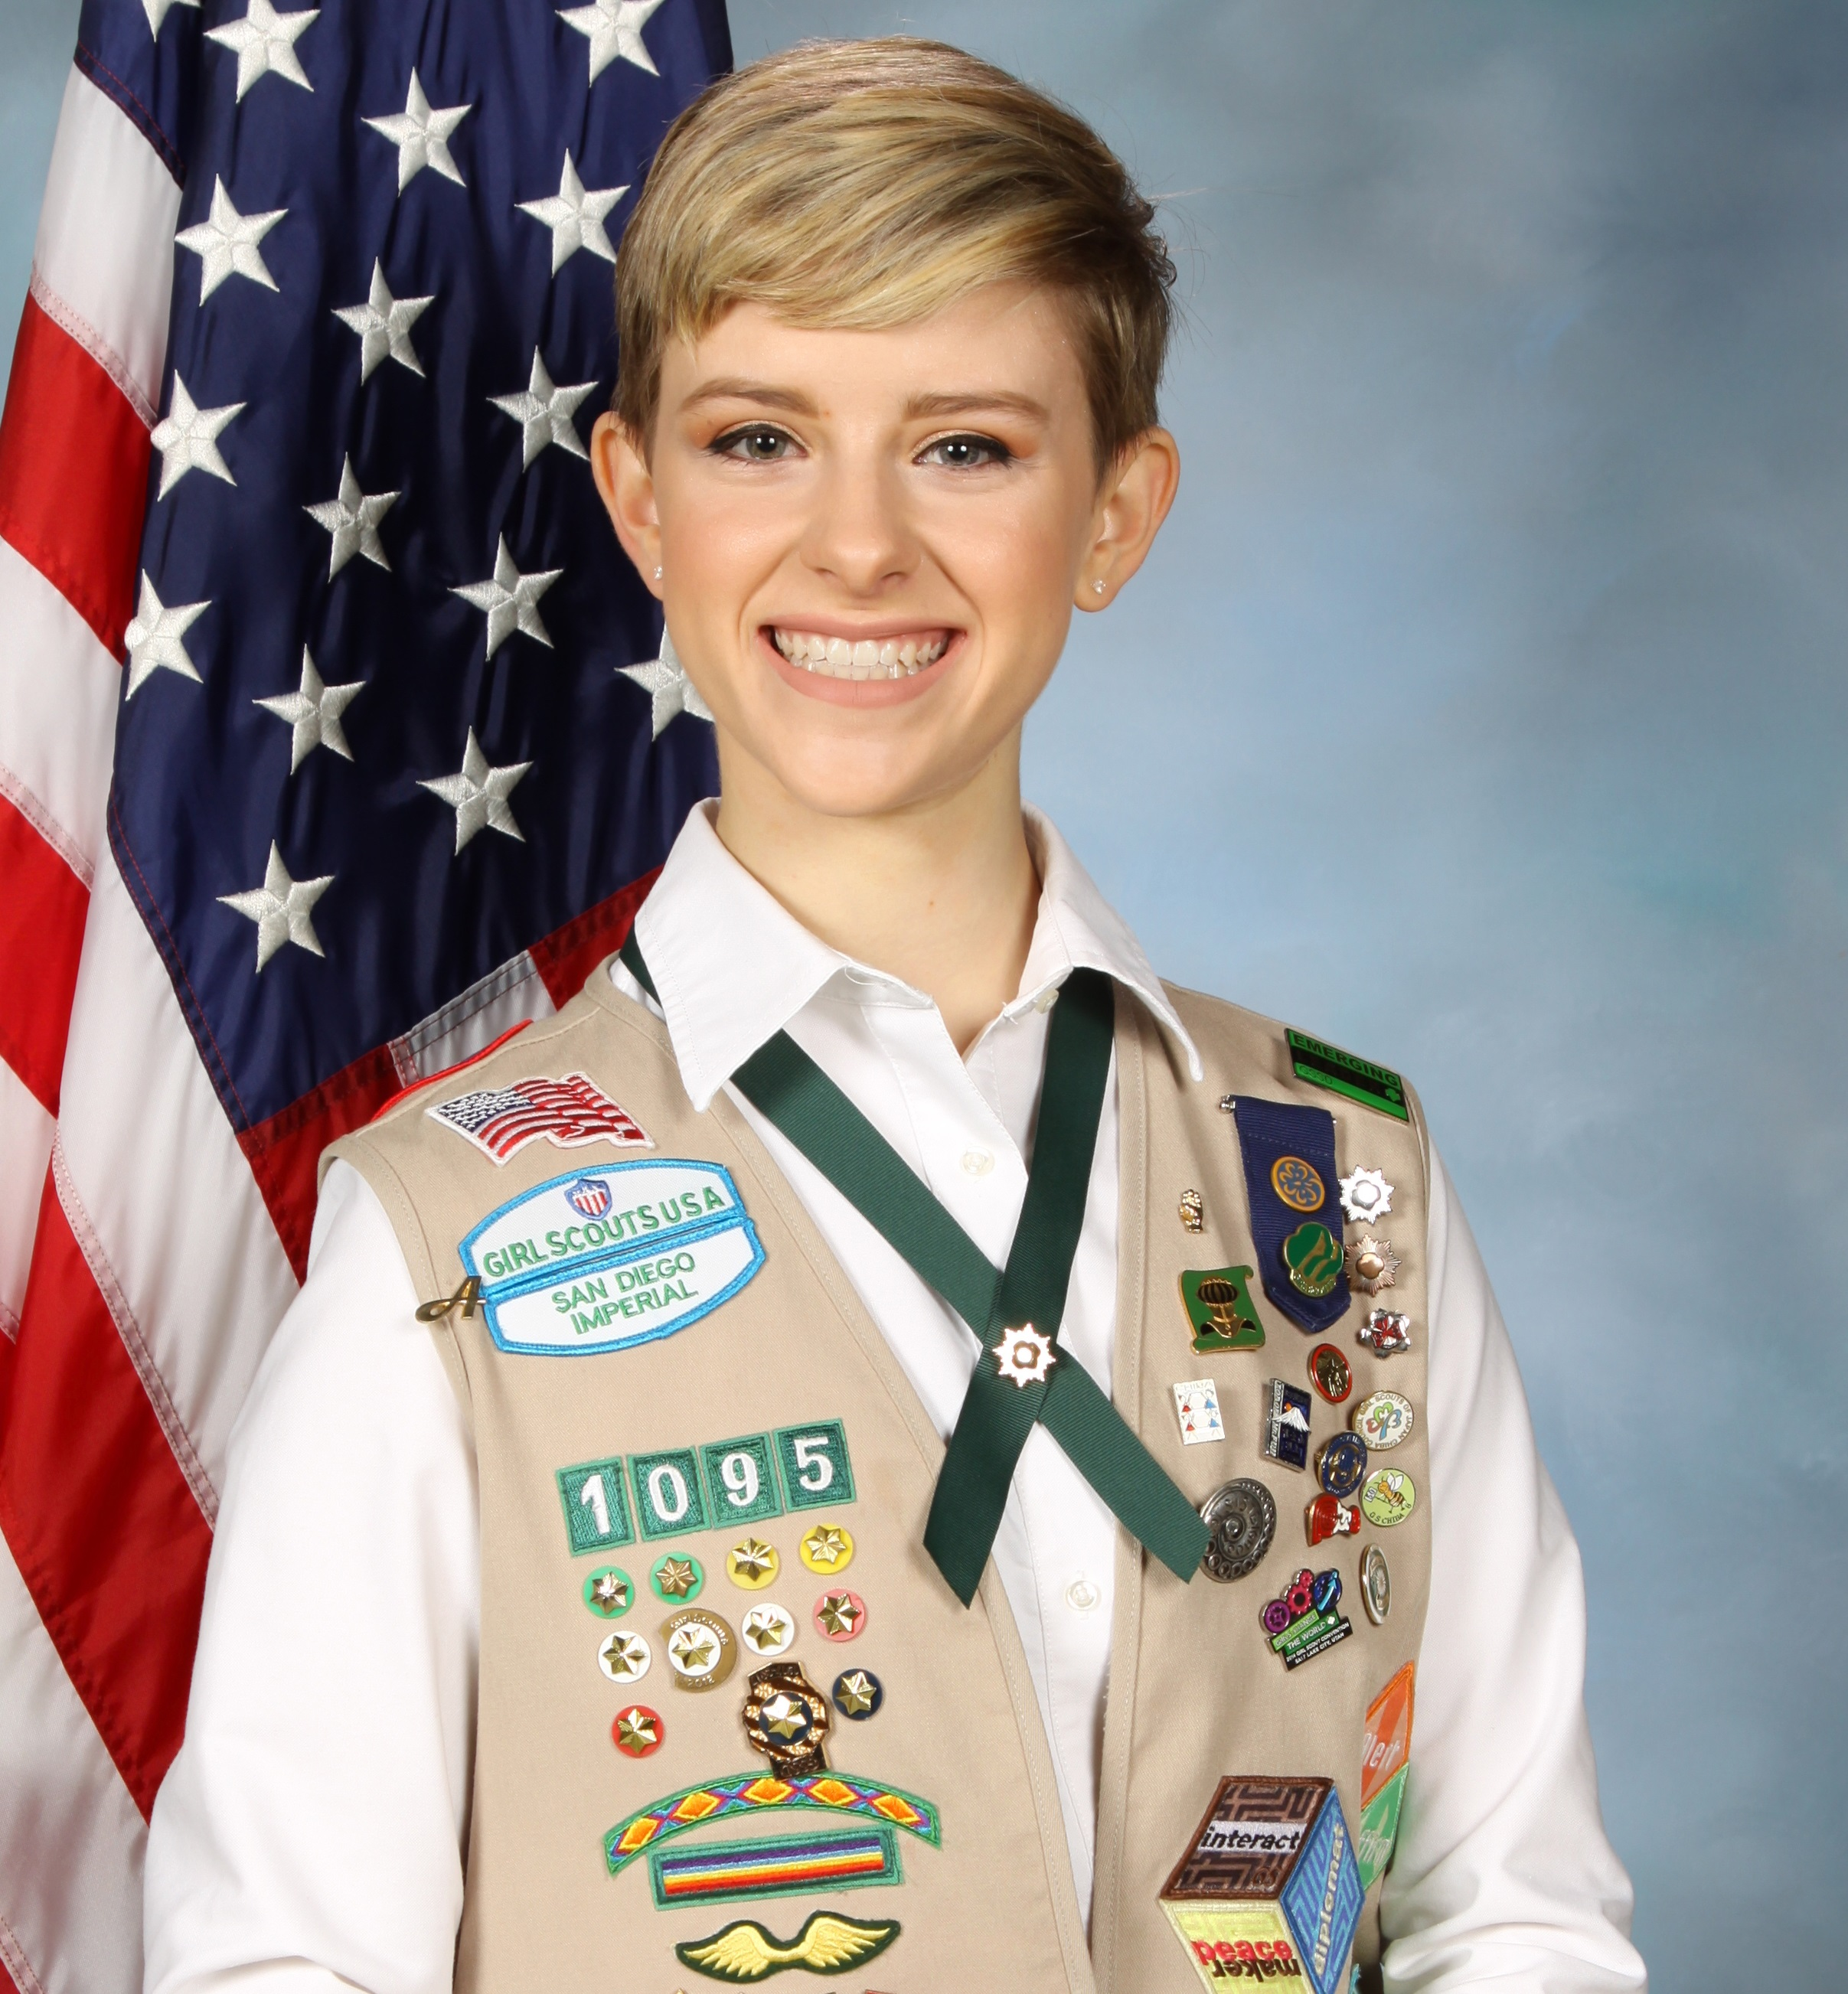 RSF Girl Scout earns highest honor